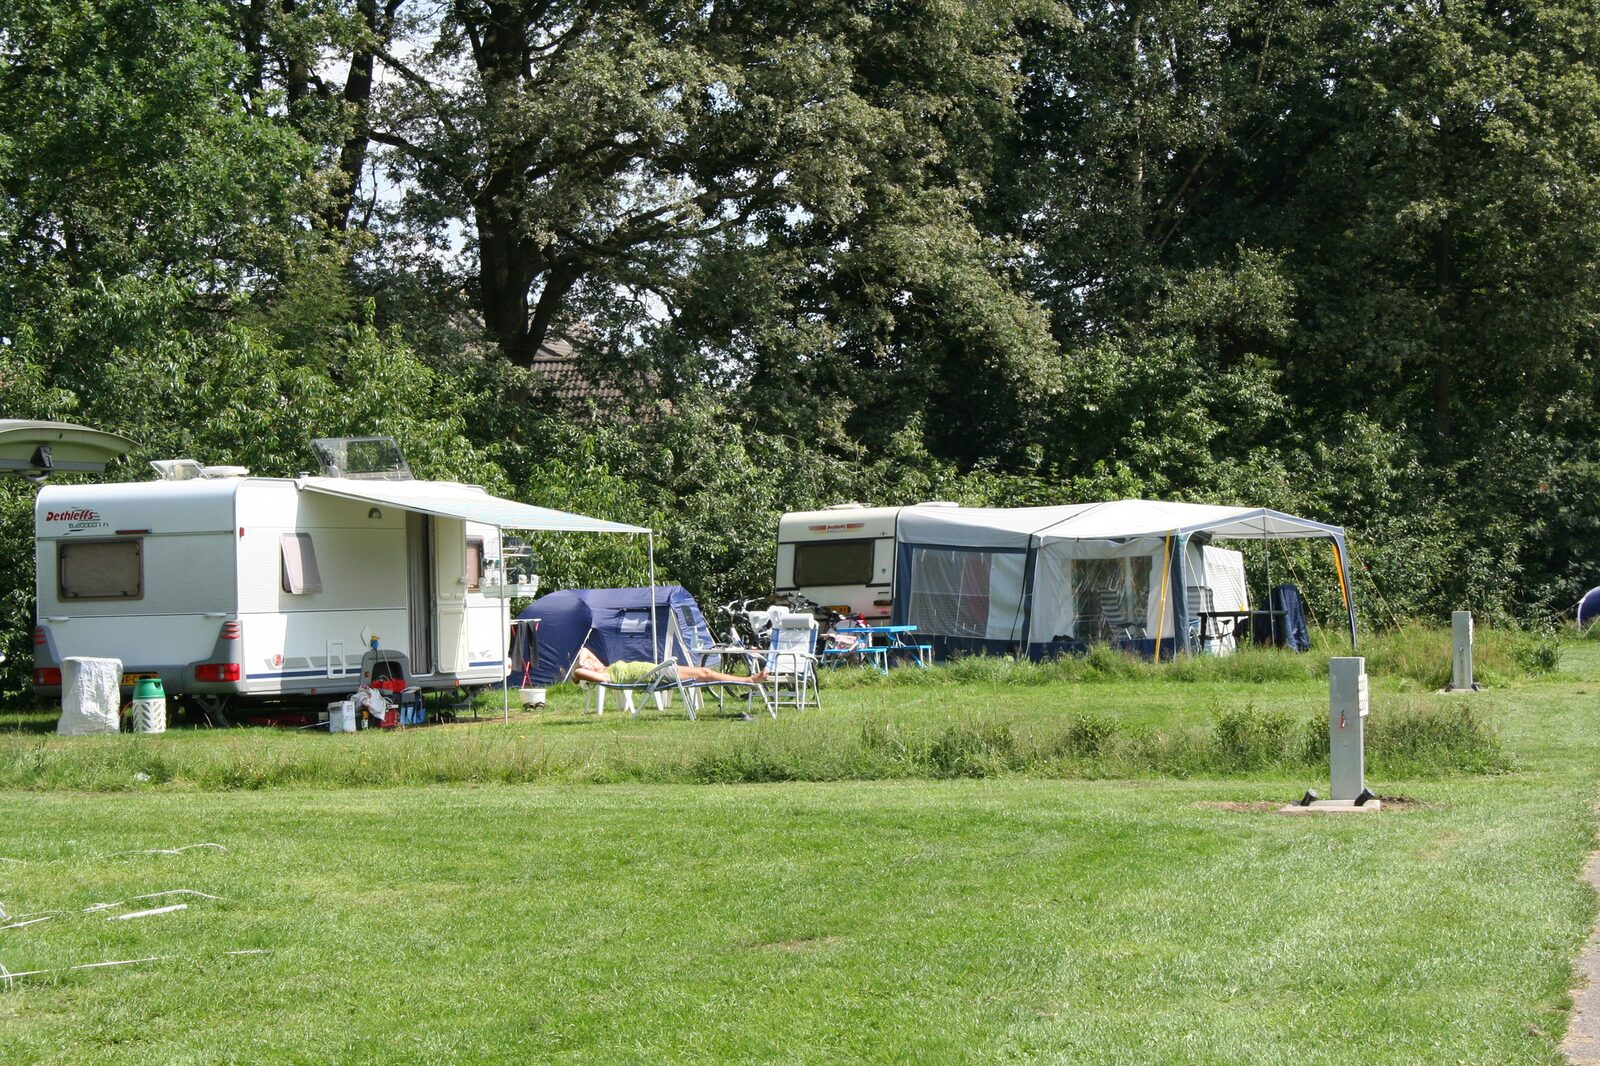 Camping pitch (copy)